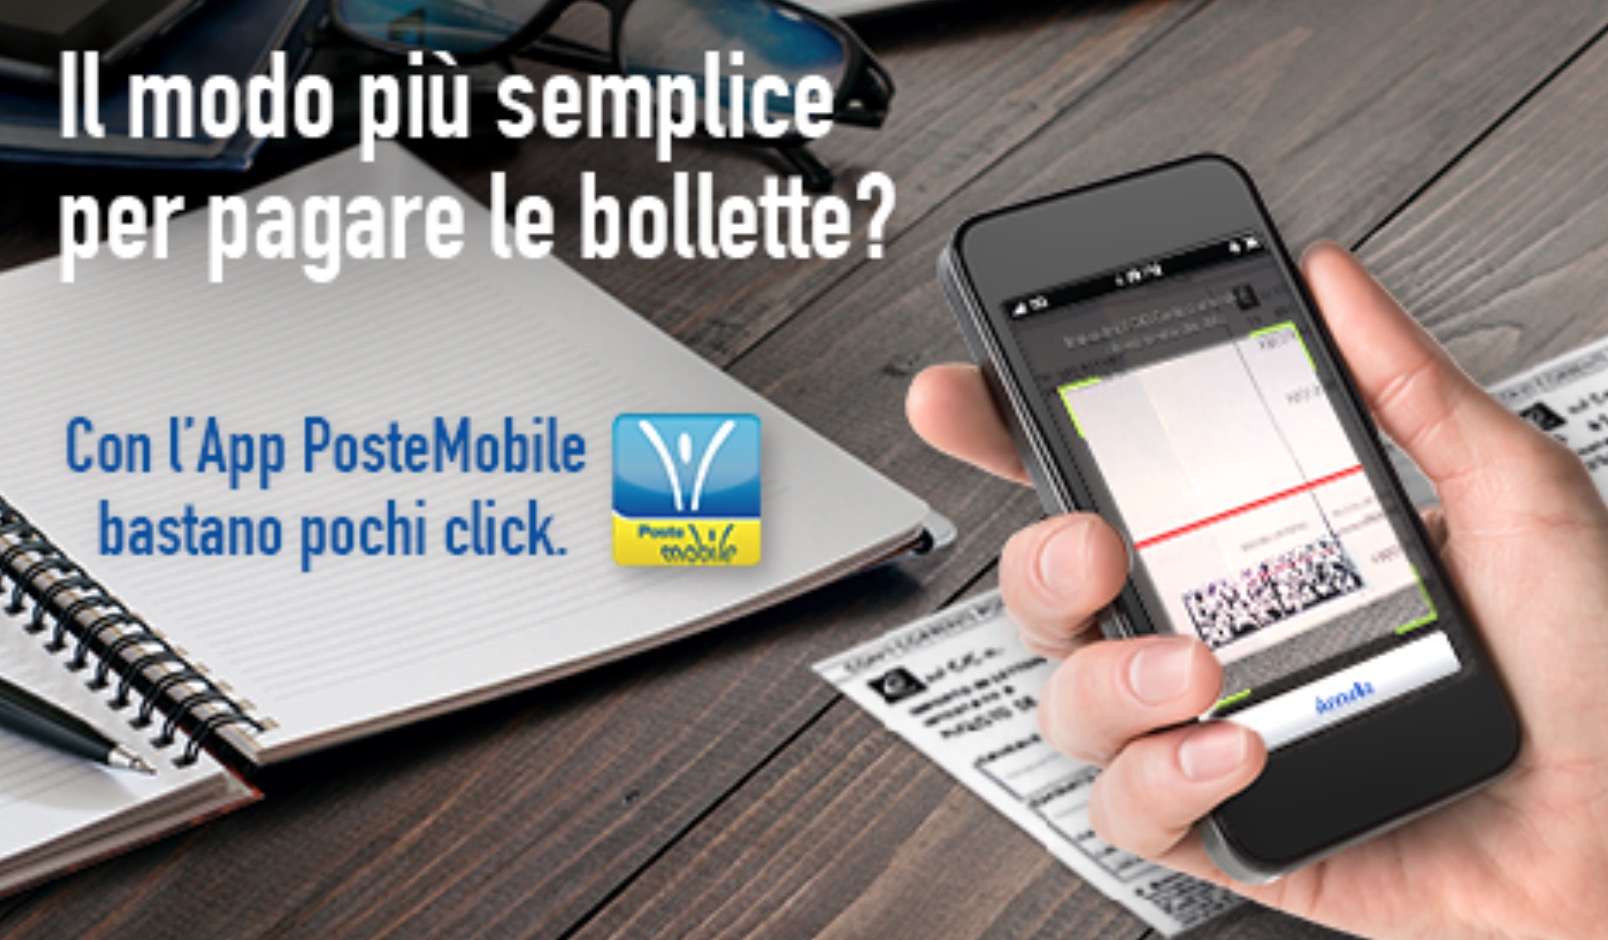 App PosteMobile per iOS, Android e Windows Phone